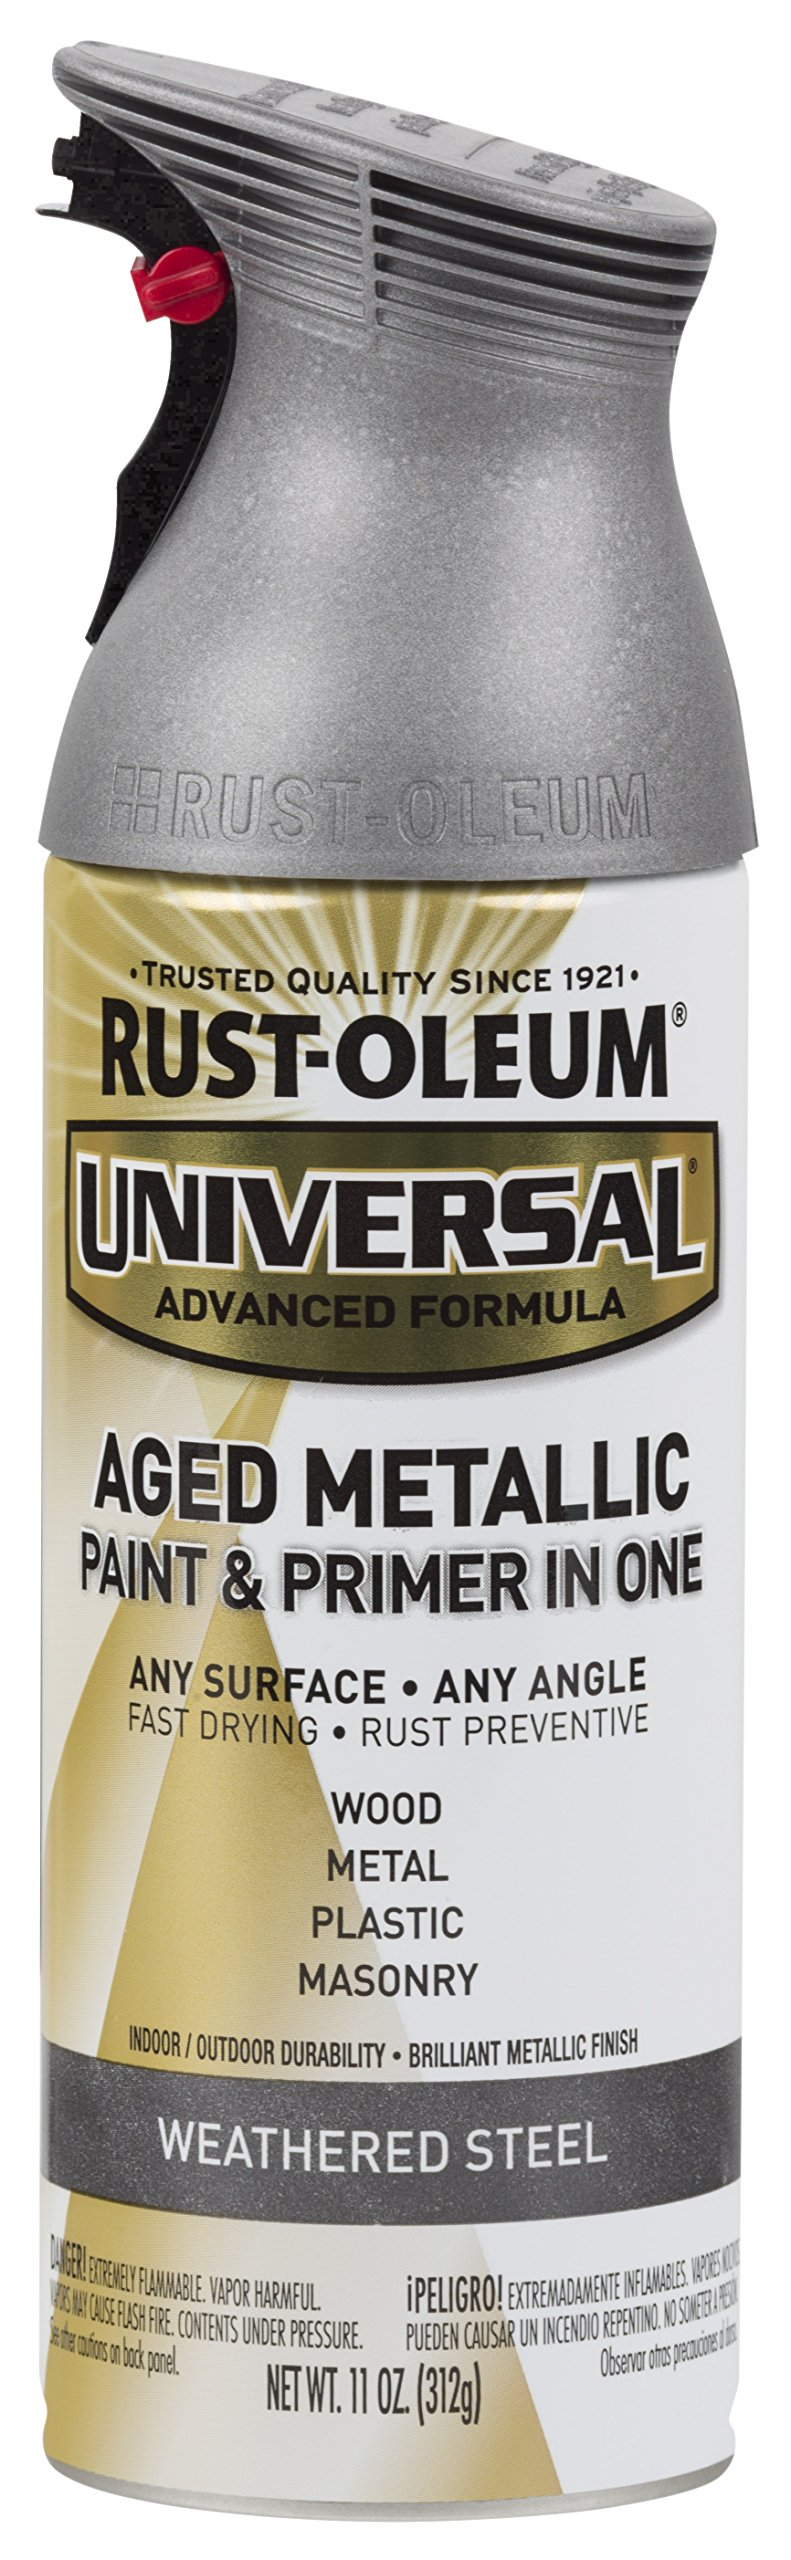 Rust-Oleum 285073 Universal All Surface Spray Paint, 11 oz, Aged Metallic Weathered Steel